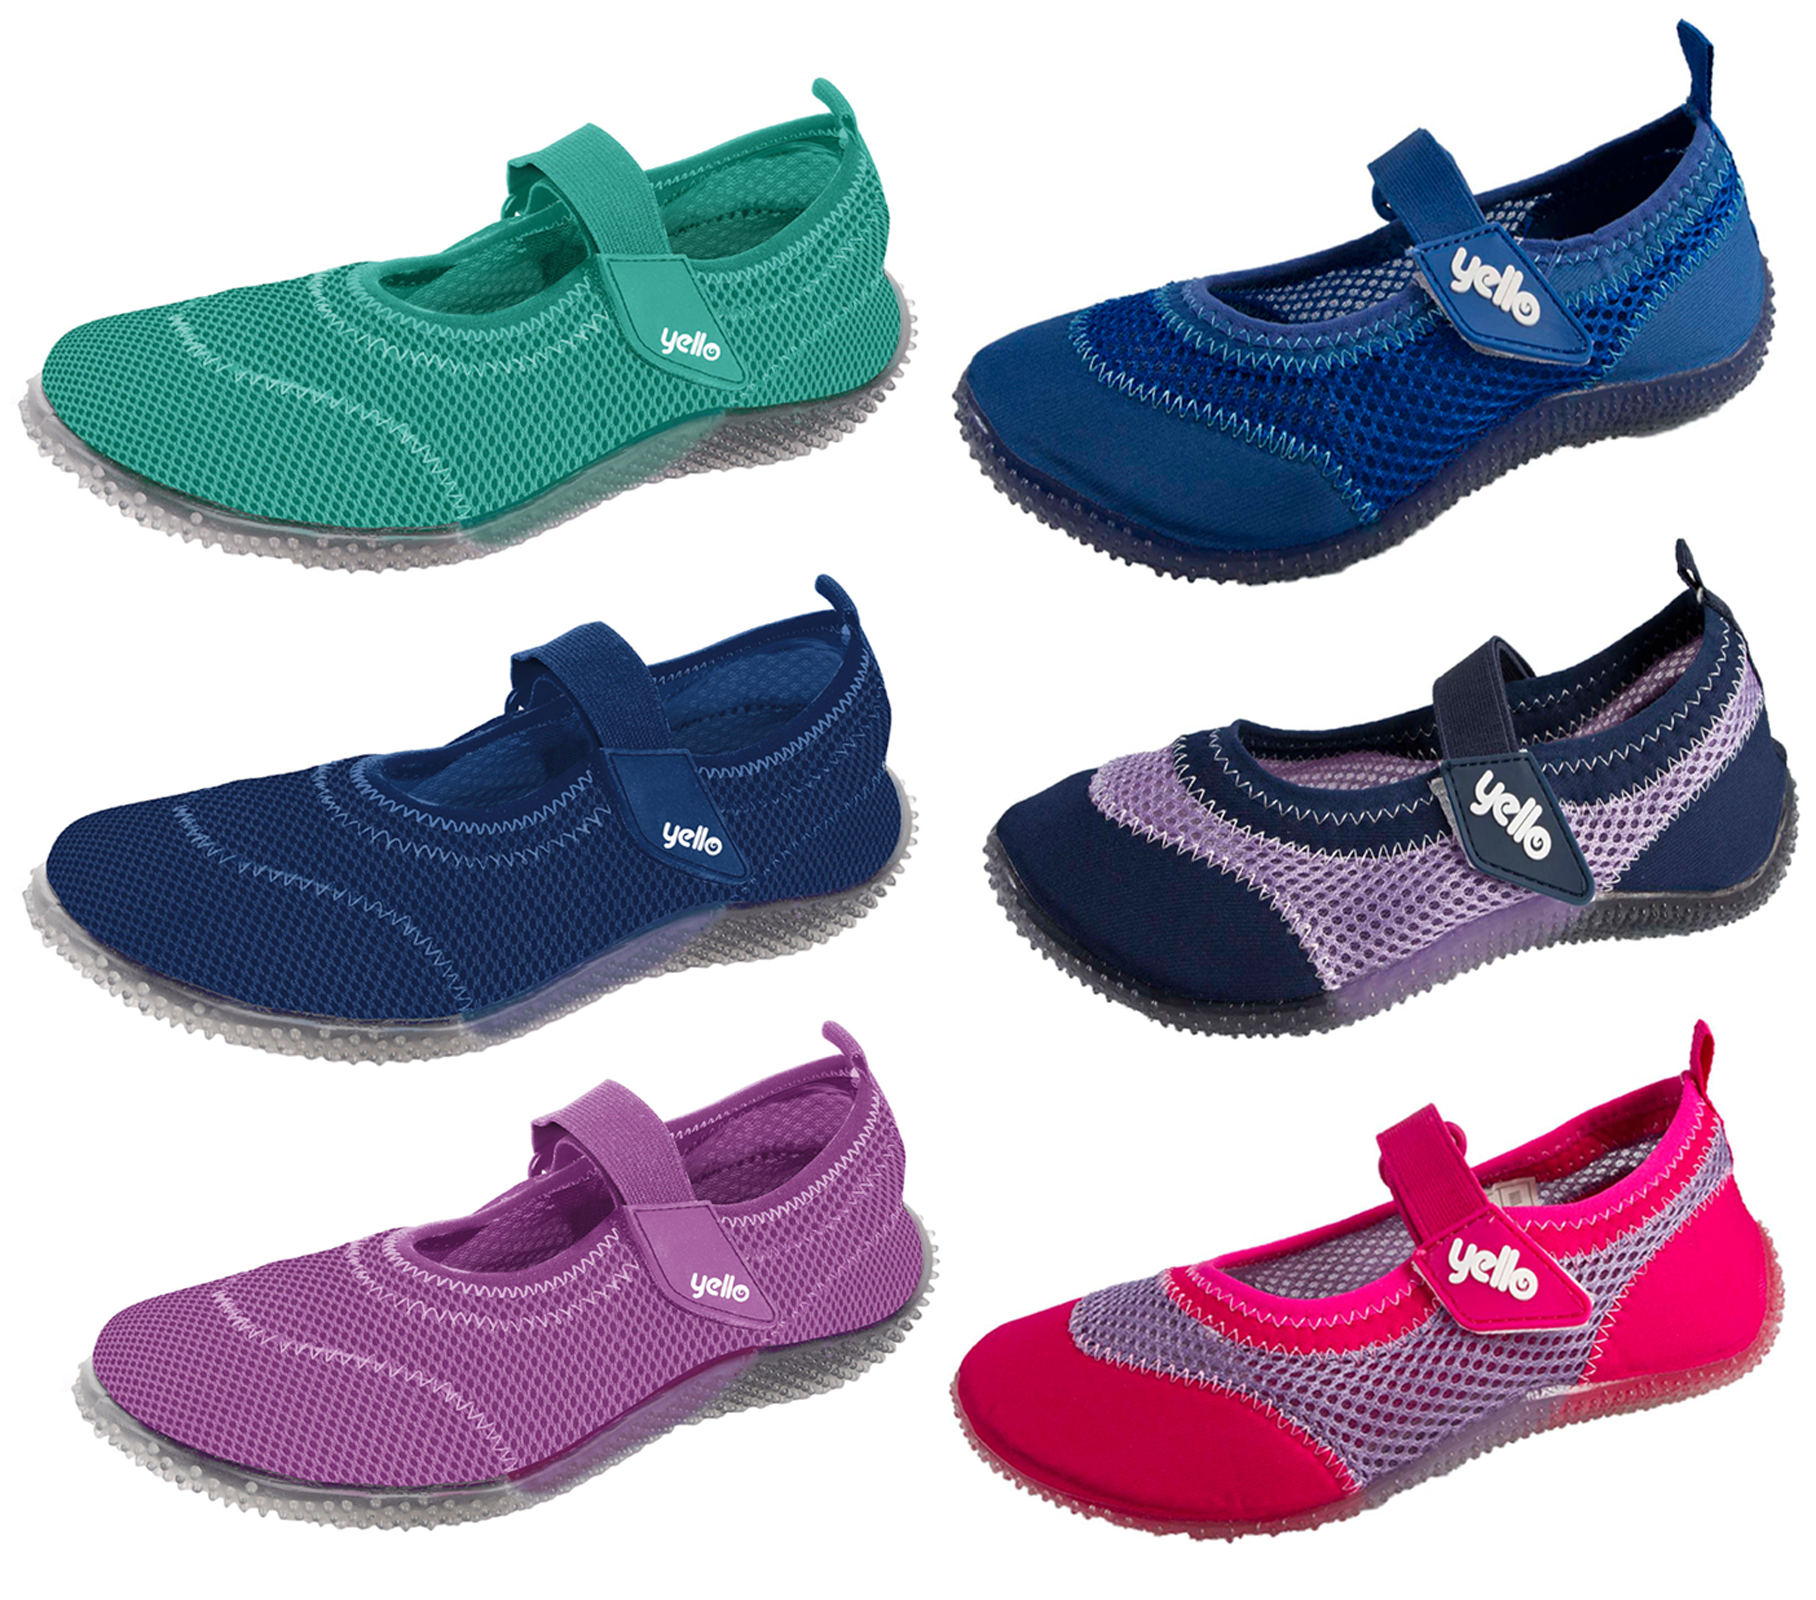 380030d671c7 Womens Aqua Socks Beach Water Shoes Adjustable Sandals Pool Yoga Girls  Ladies